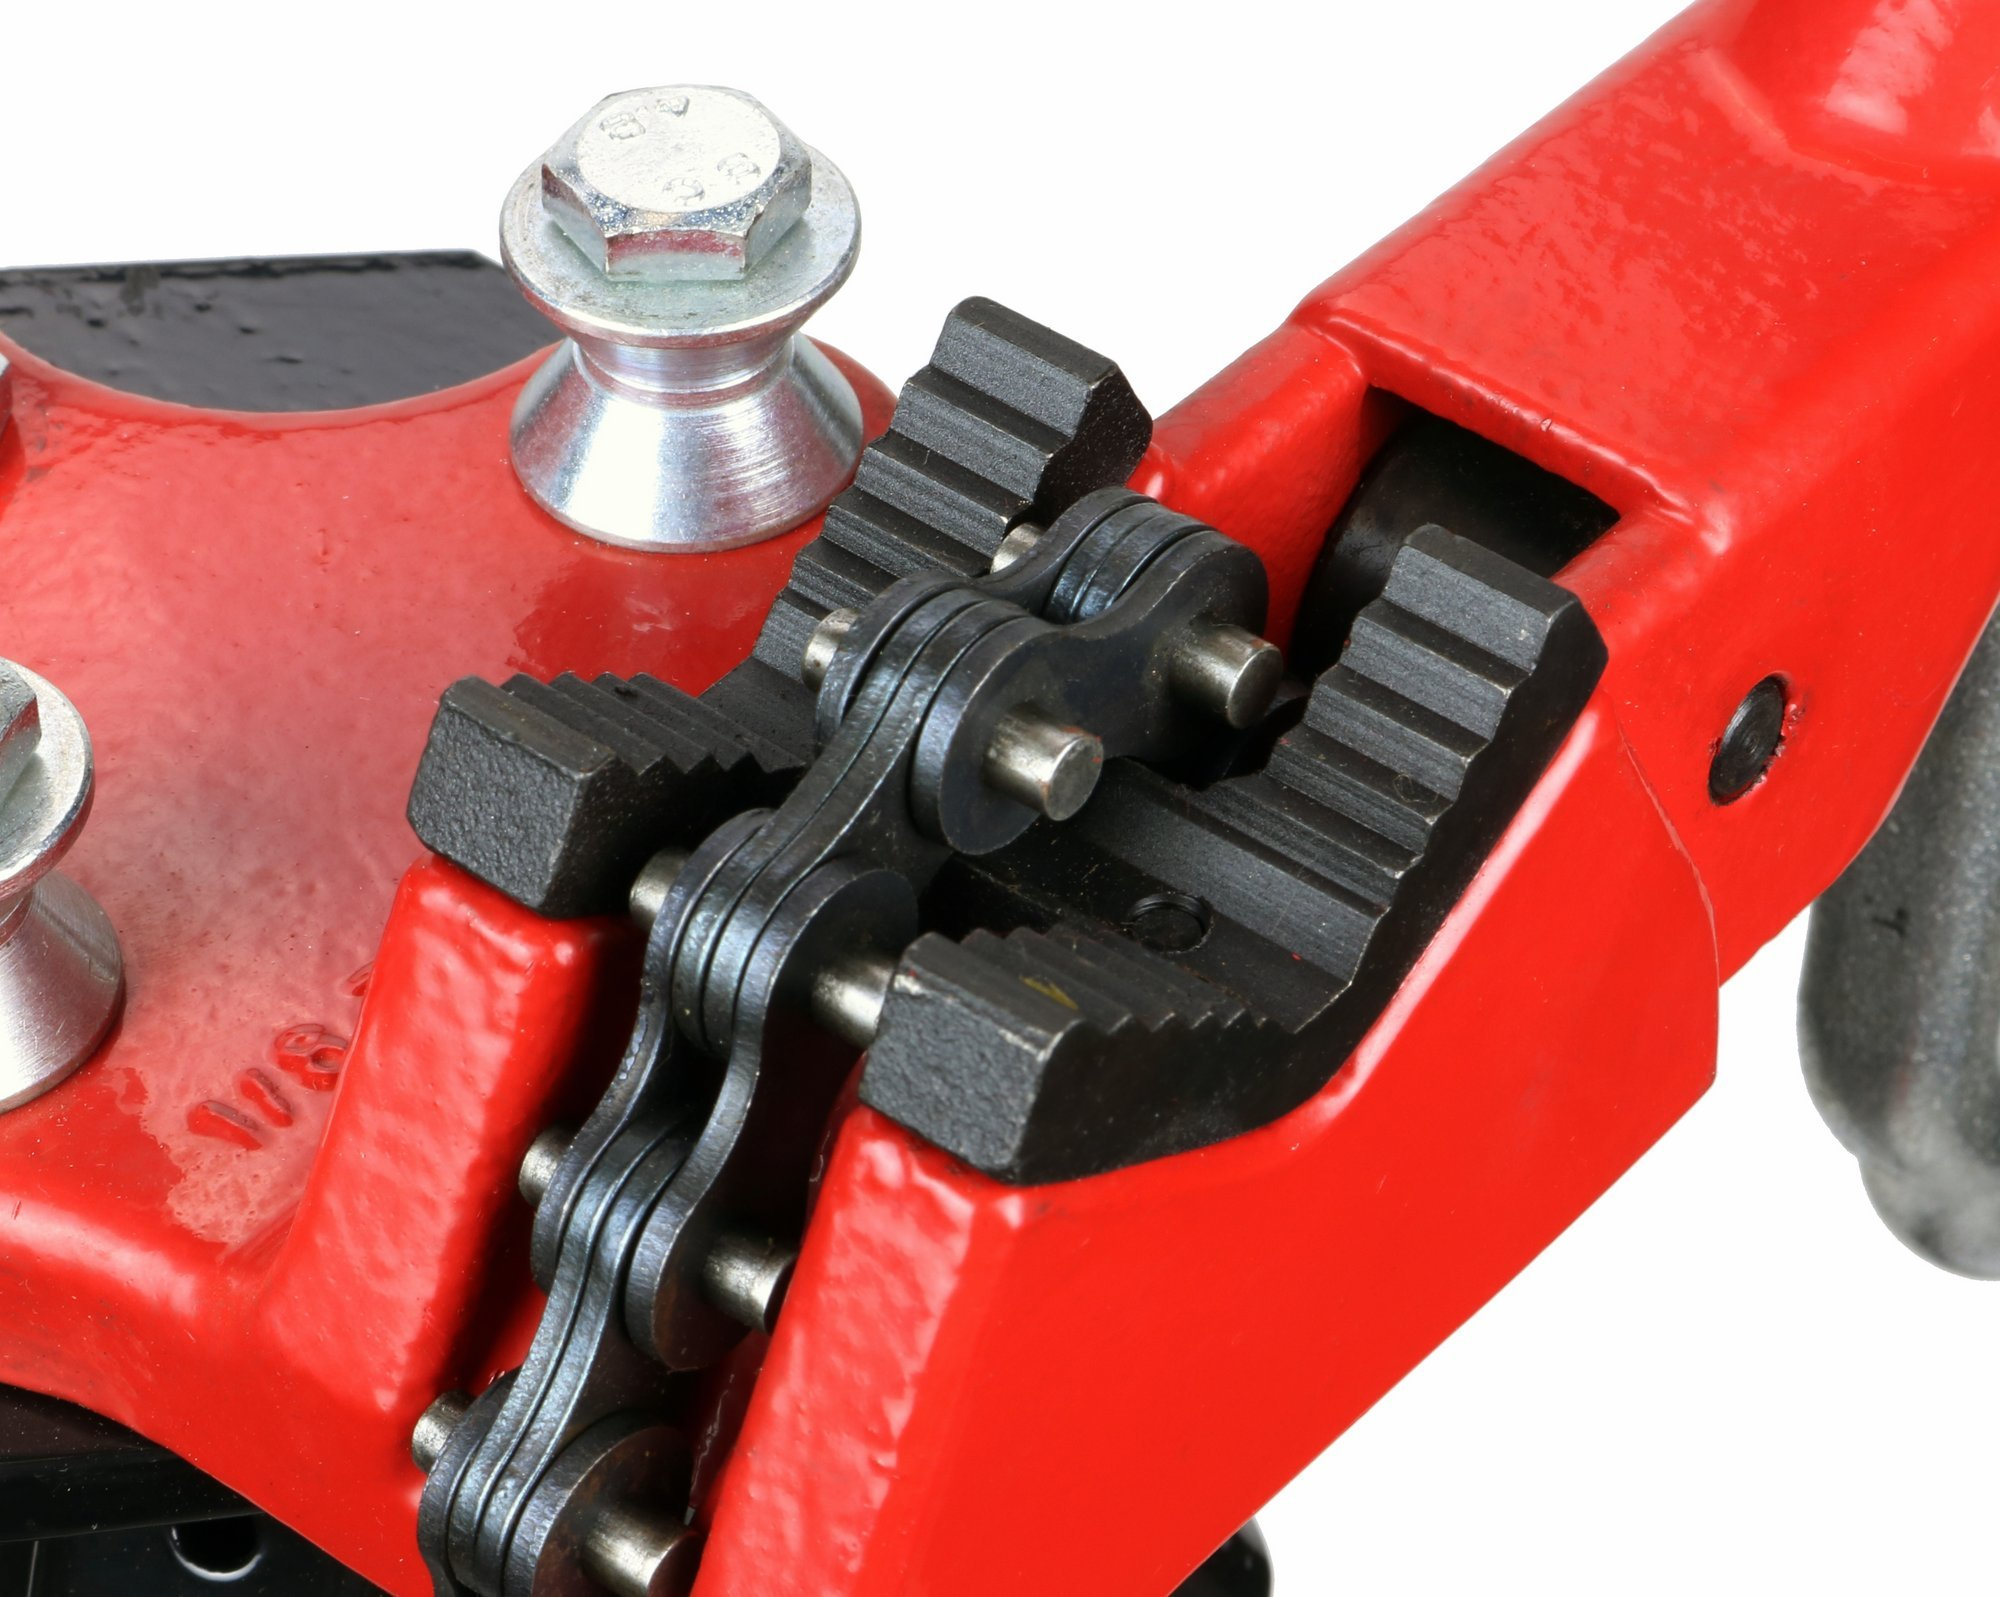 Toledo Pipe 425 Stand Portable Tripod Chain Vise works with RIDGID 12R 700 Pipe Threader by Toledo Pipe Tools (Image #4)